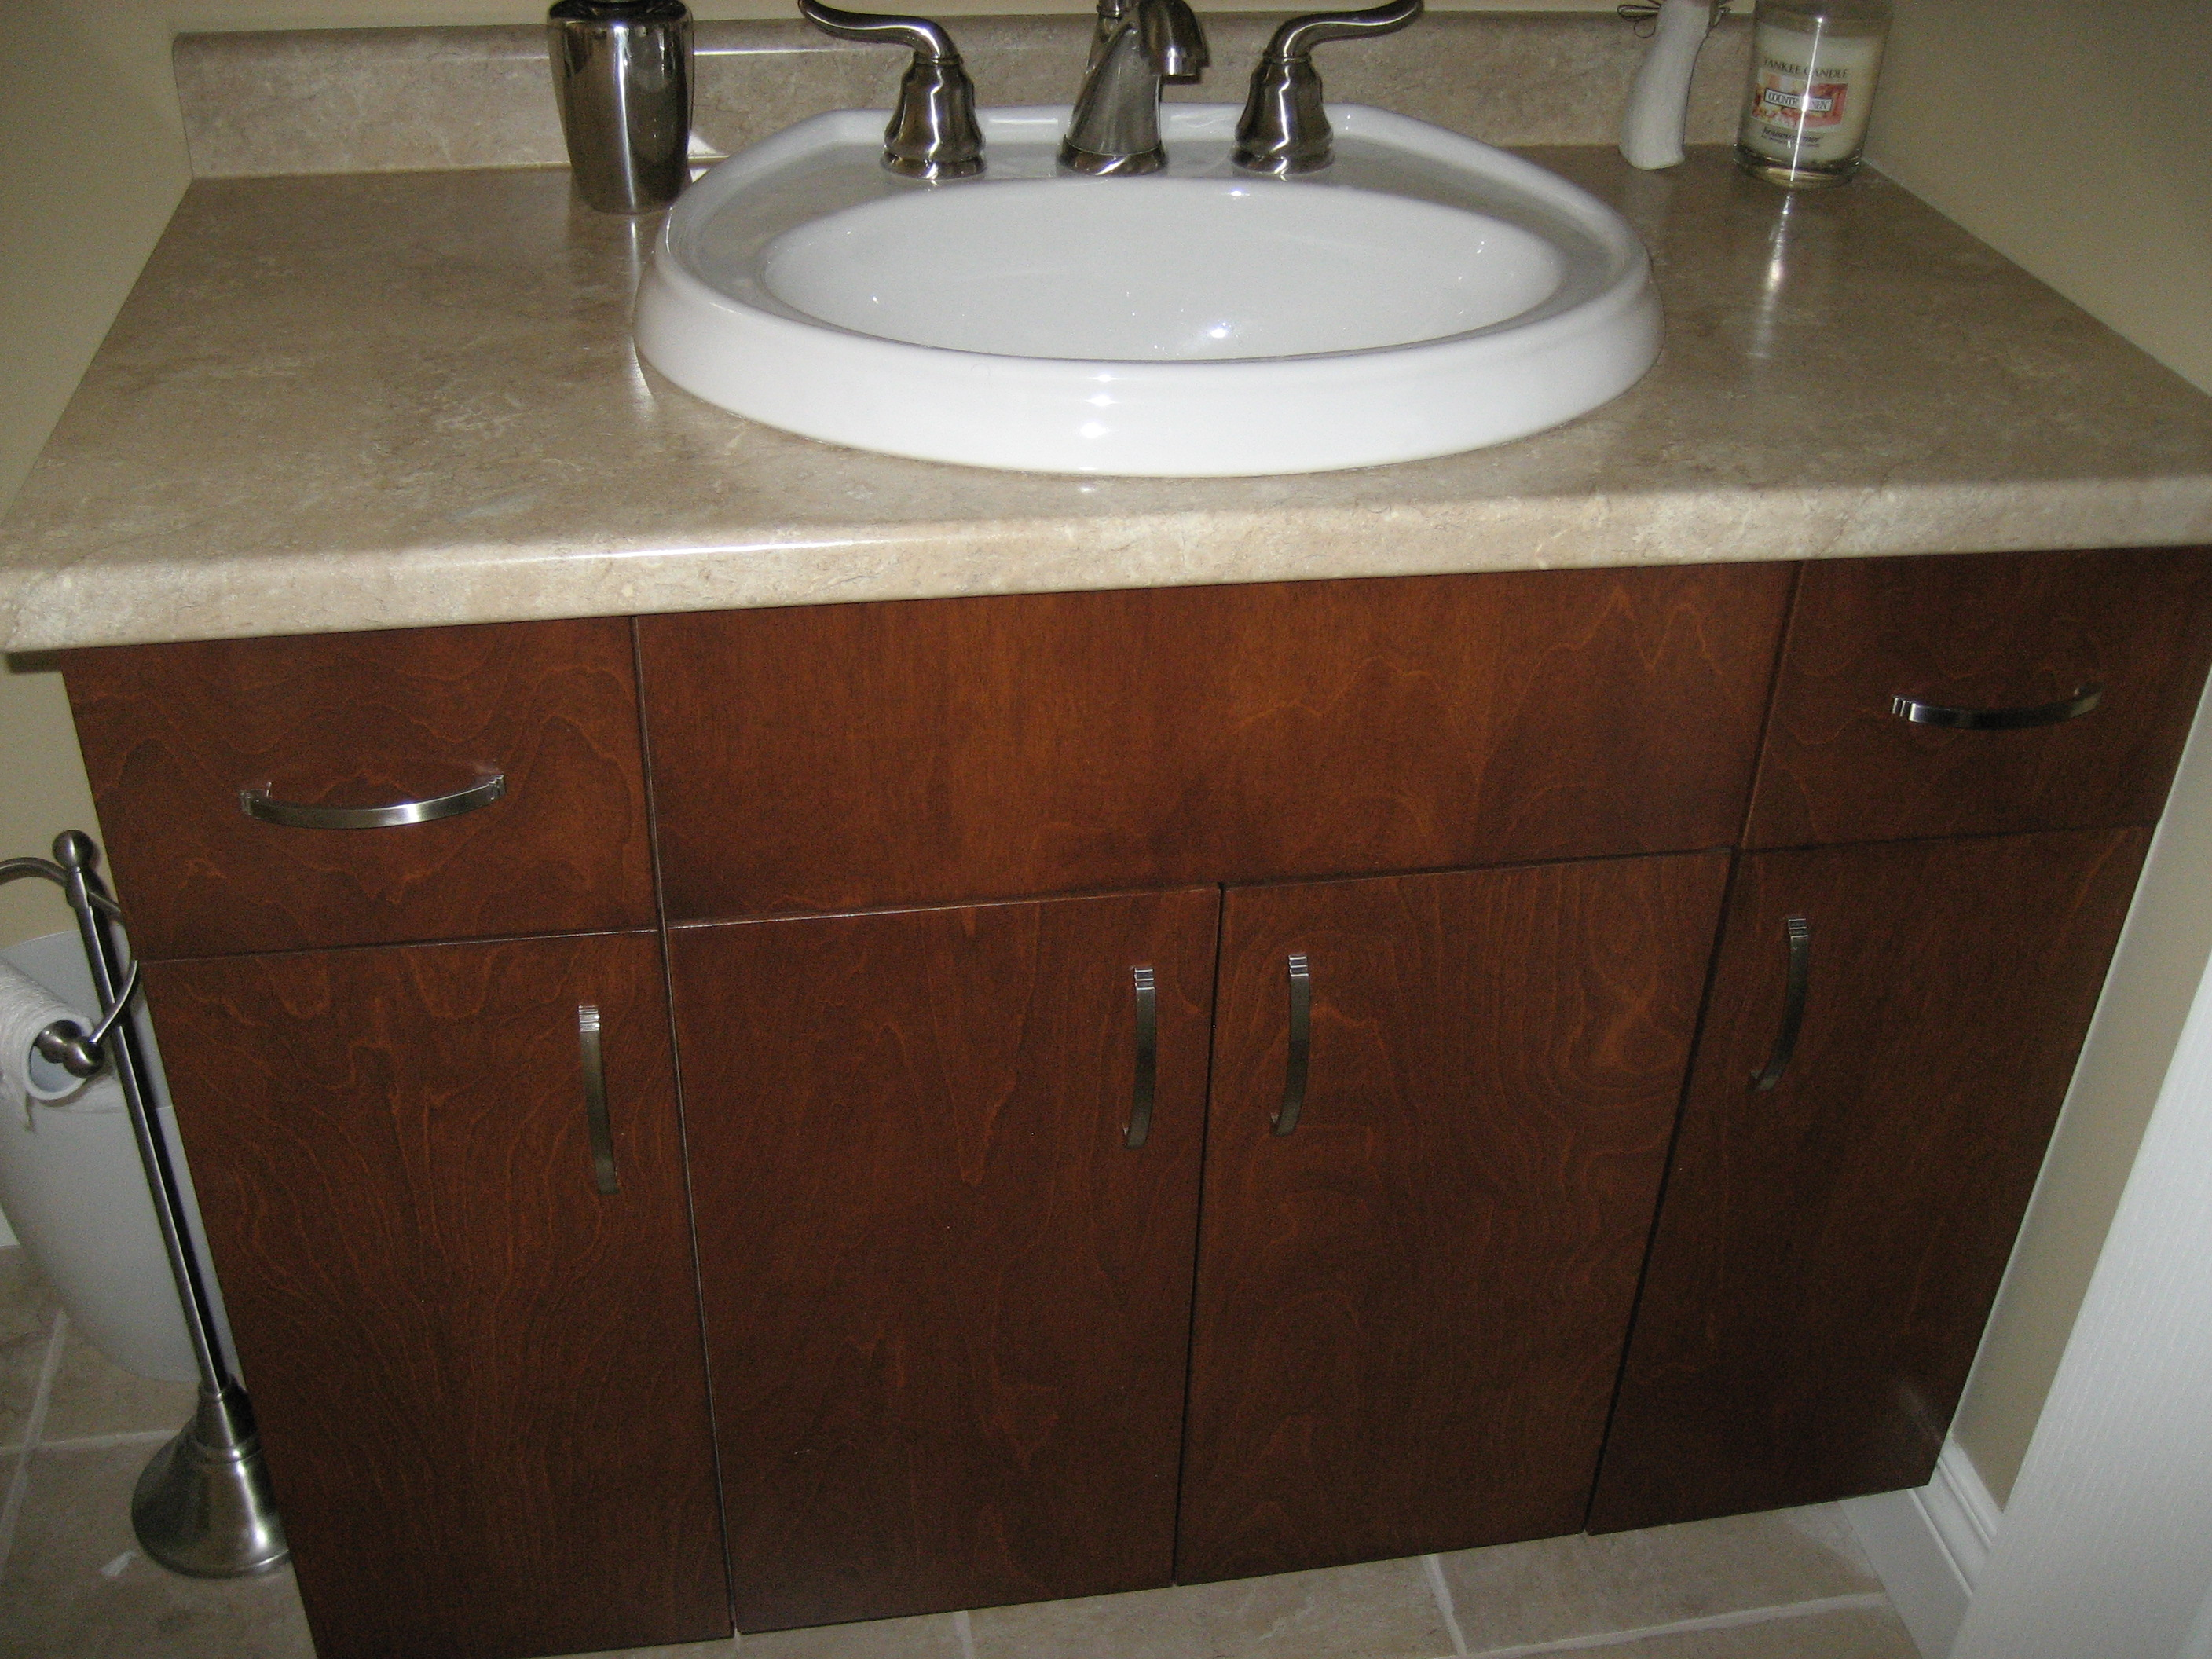 inset vanity full sink custom bathroom cabinet staggering whitebathroom size built and of whitecustom lowes vanities sinktts black